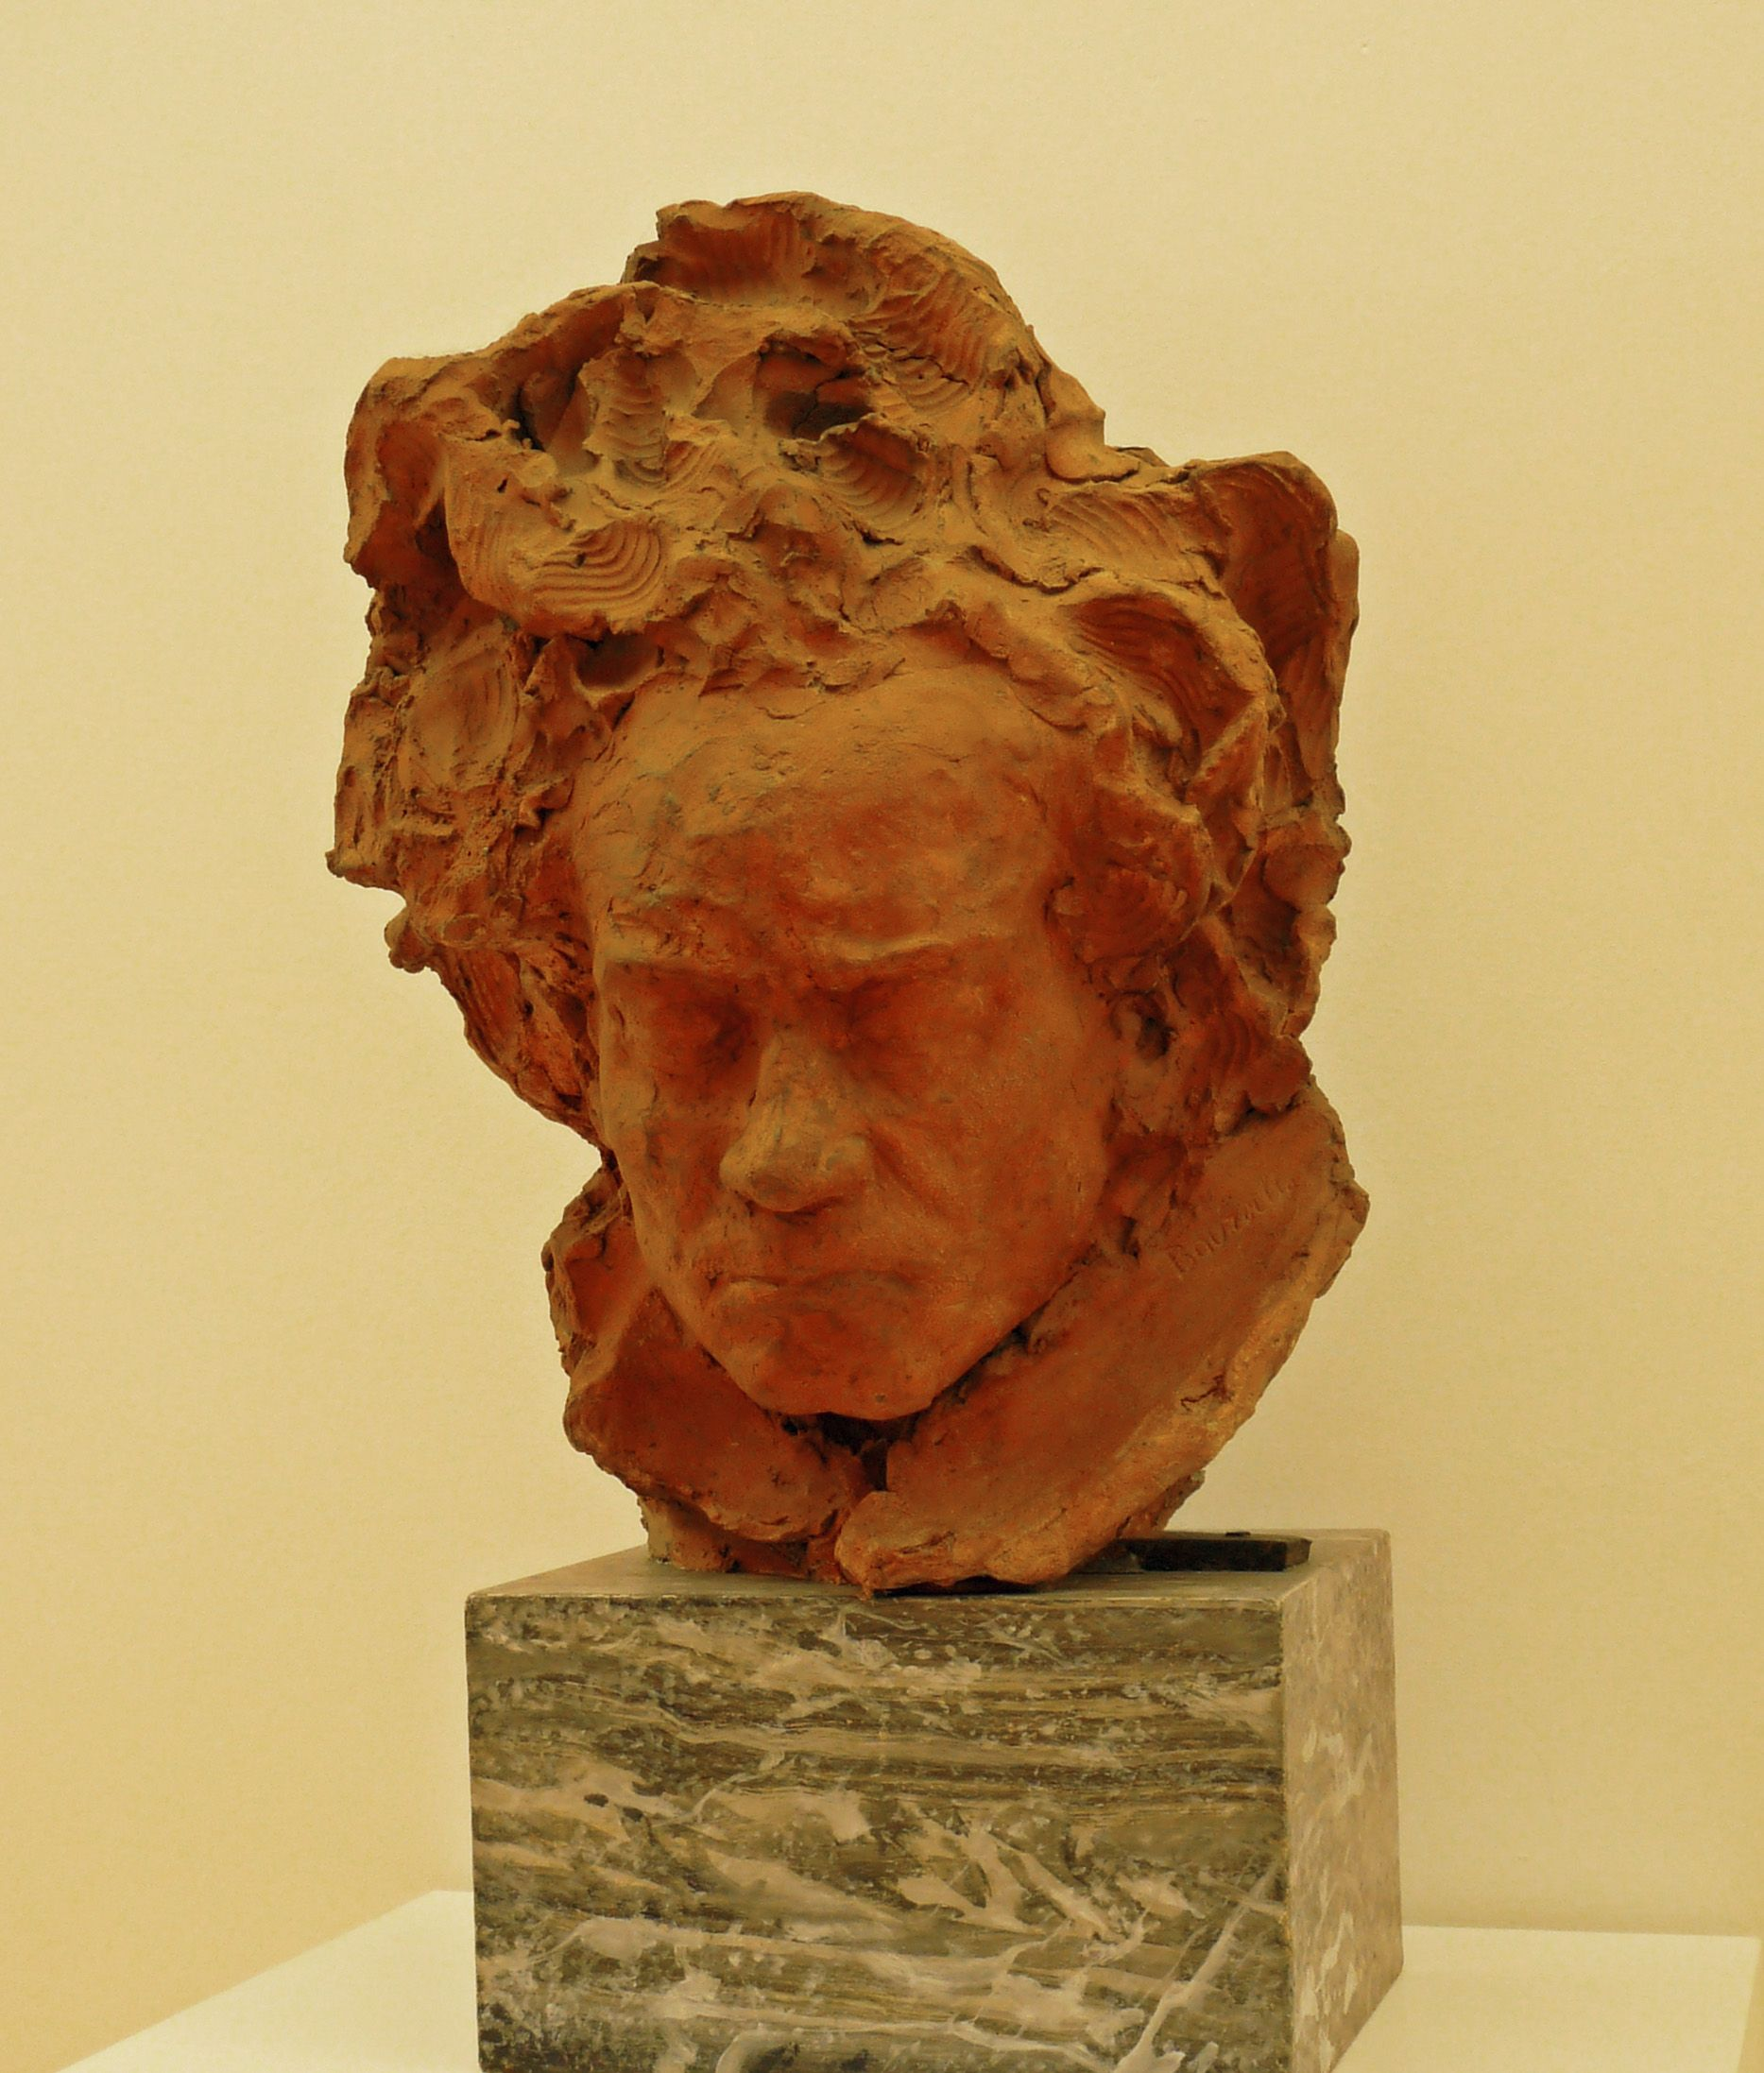 Bust Of Ludwig Van Beethoven 1903 By Emile Antoine Bourdelle Museum Of Modern And Contemporary Art Strasbourg